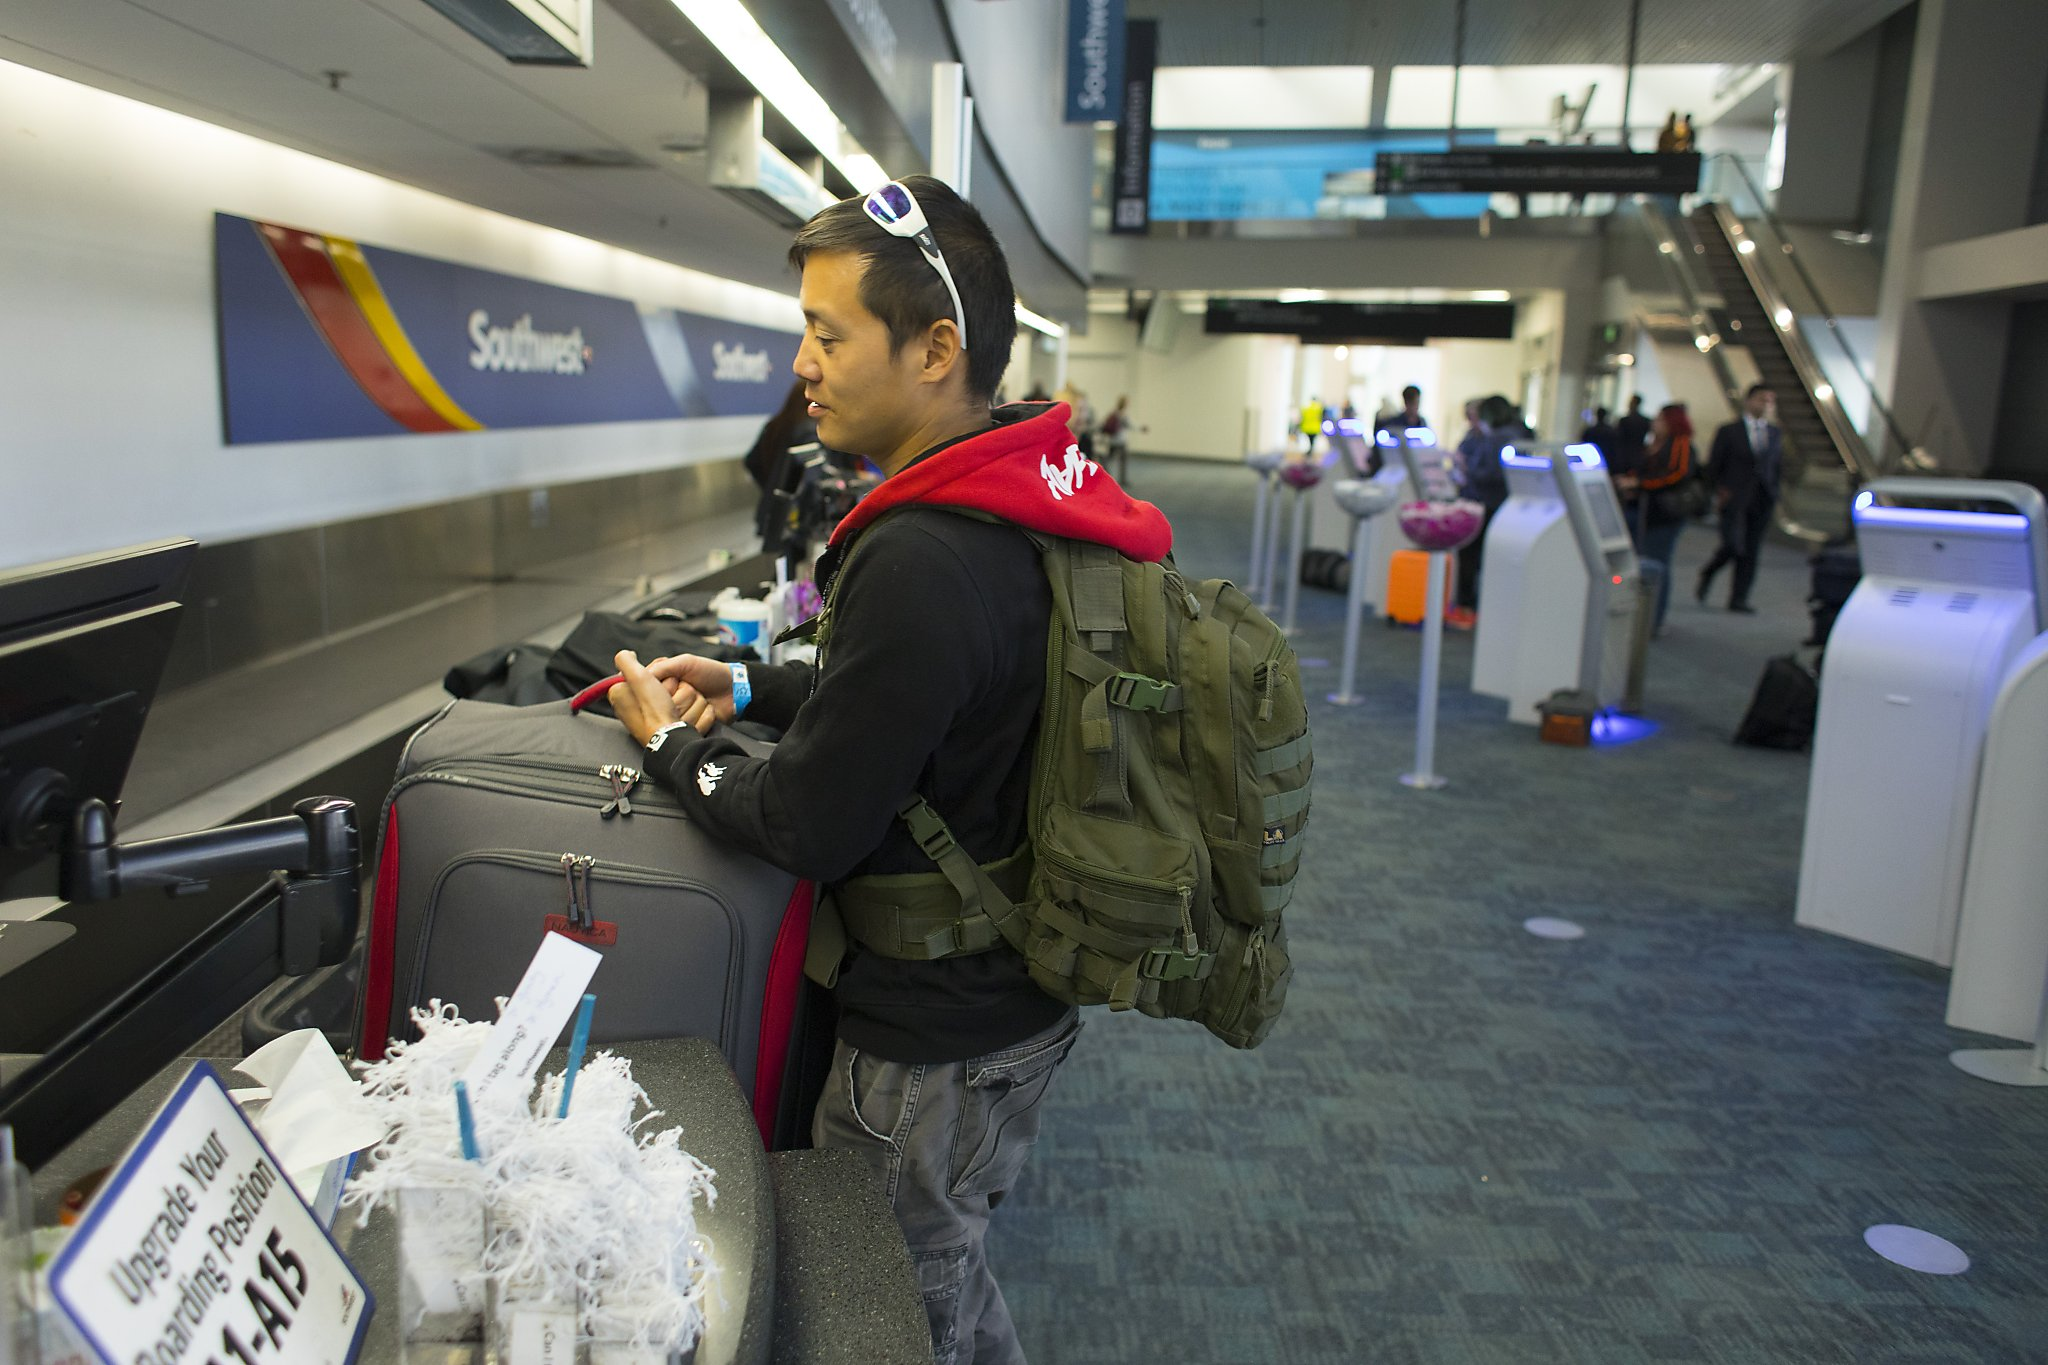 Coronavirus: As Wuhan evacuees released from Bay Area base, one traveler recounts his experience